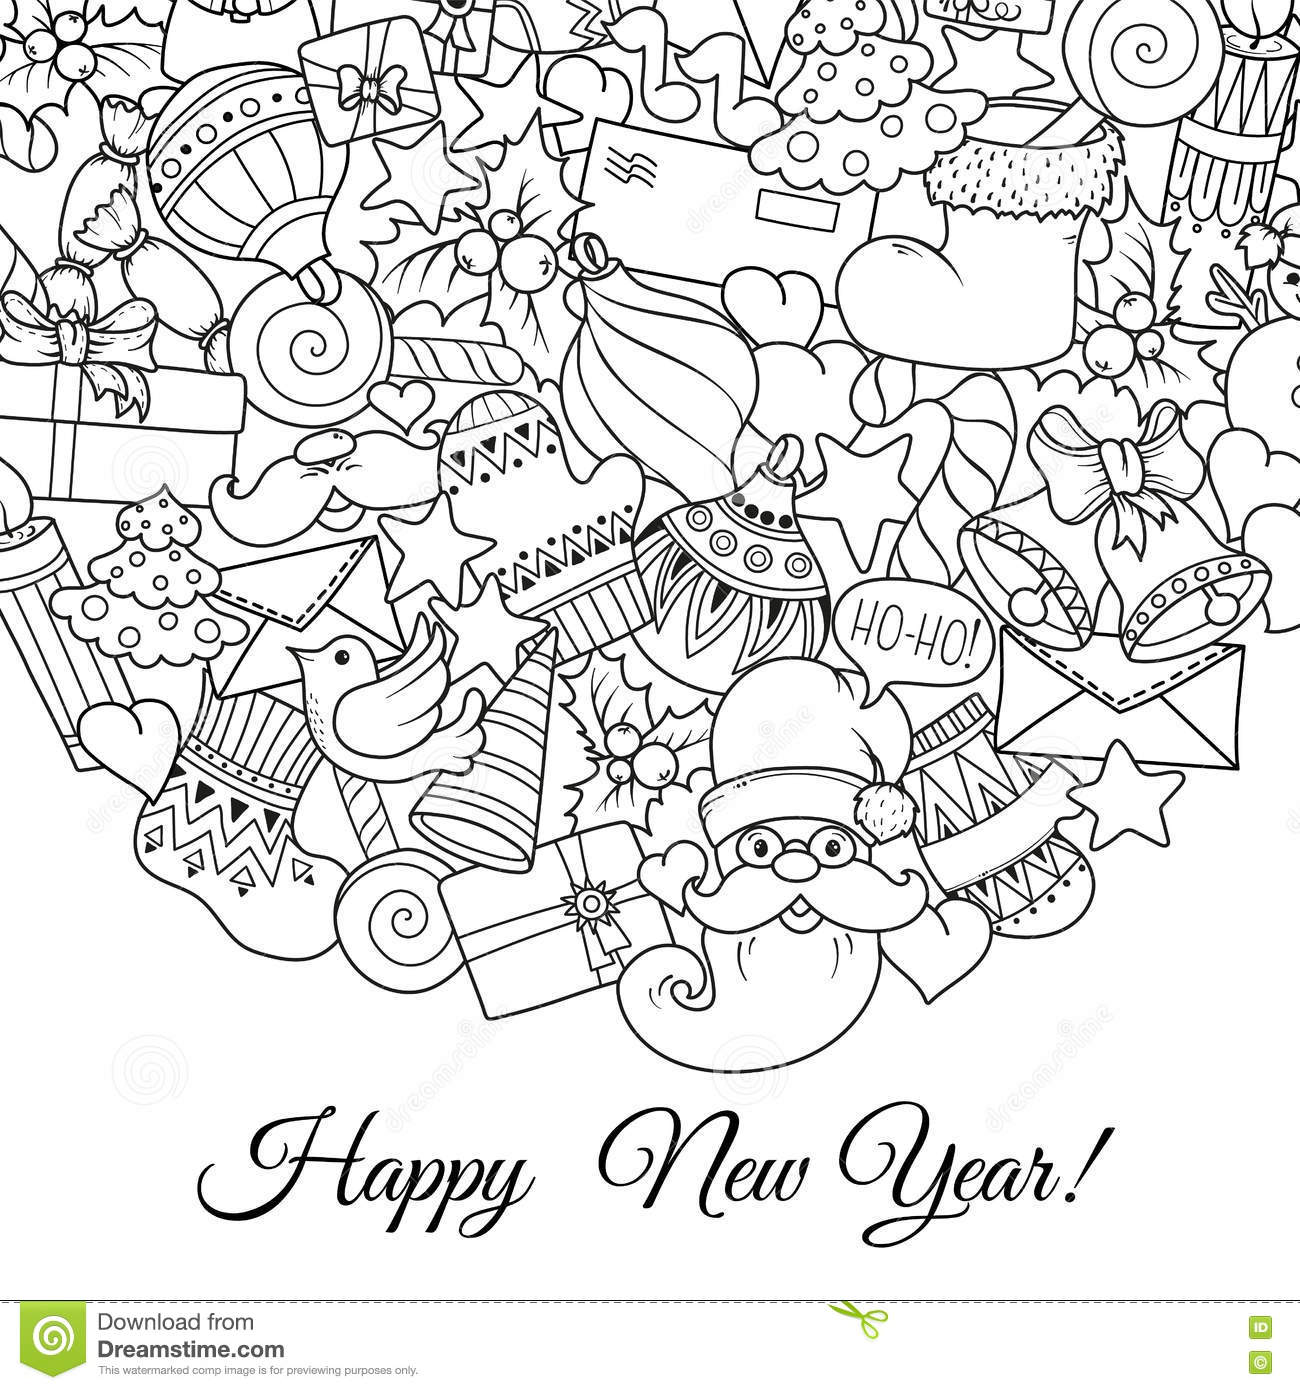 Merry Christmas Coloring Card Personalized Announcement: Merry Christmas Set Of Xmas Monochrome Pattern And Text